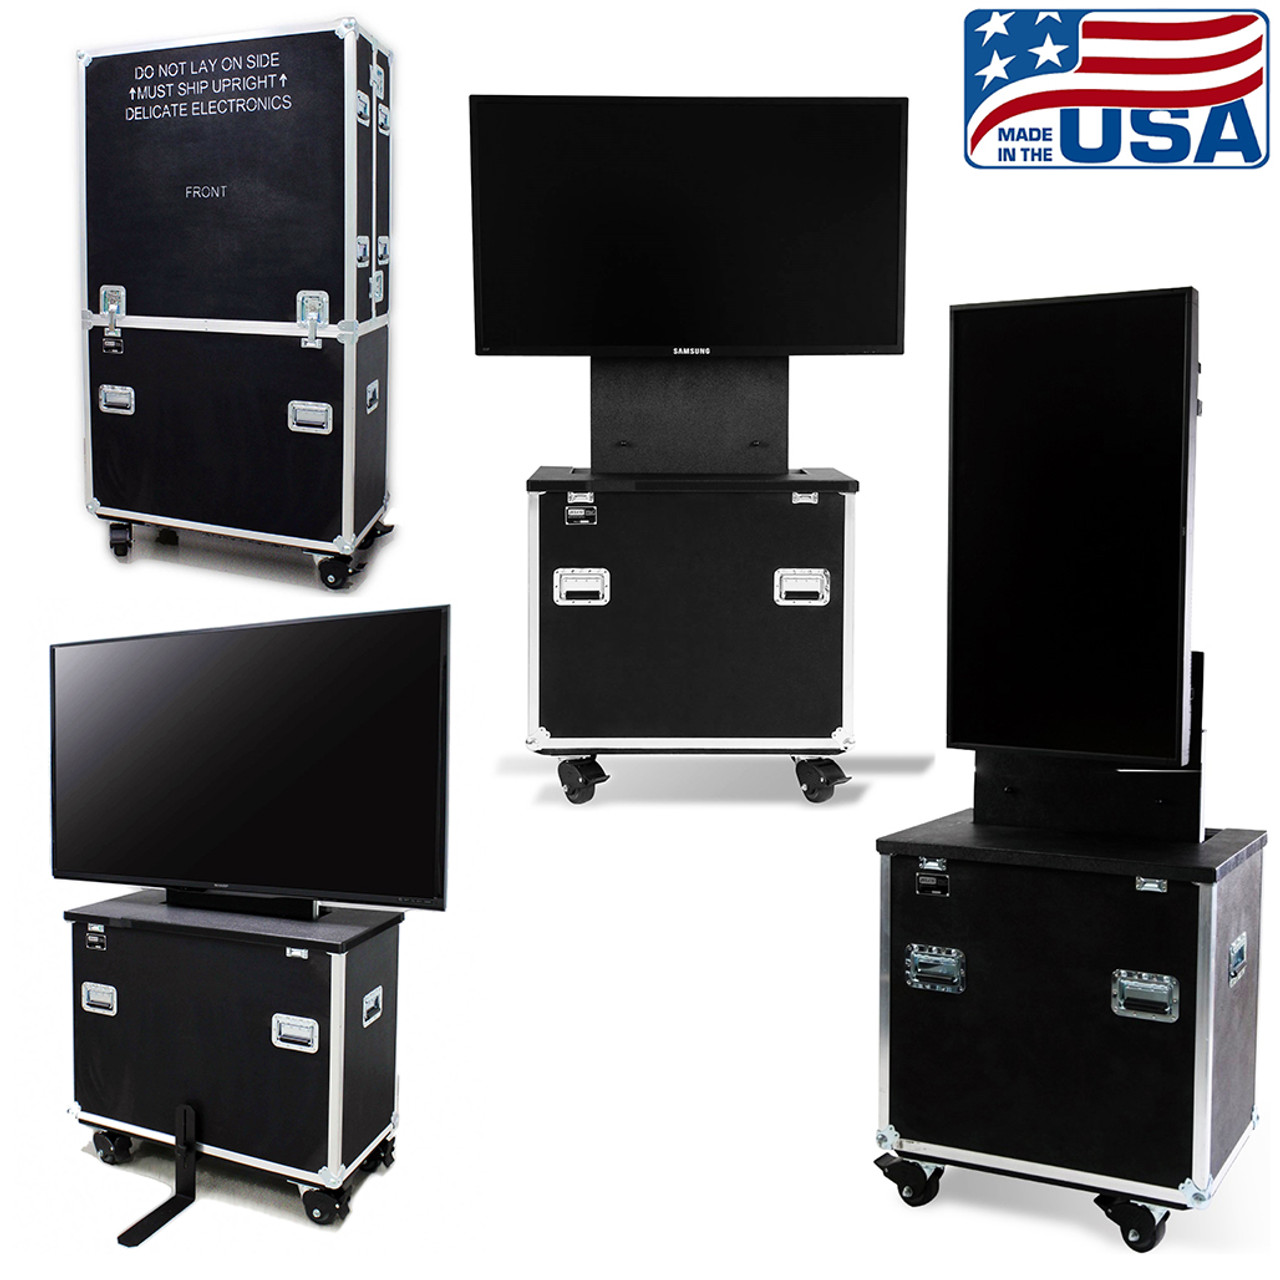 RotoLift lift cases store in portrait mode.  The cases save space and safely transport your display to and from your location